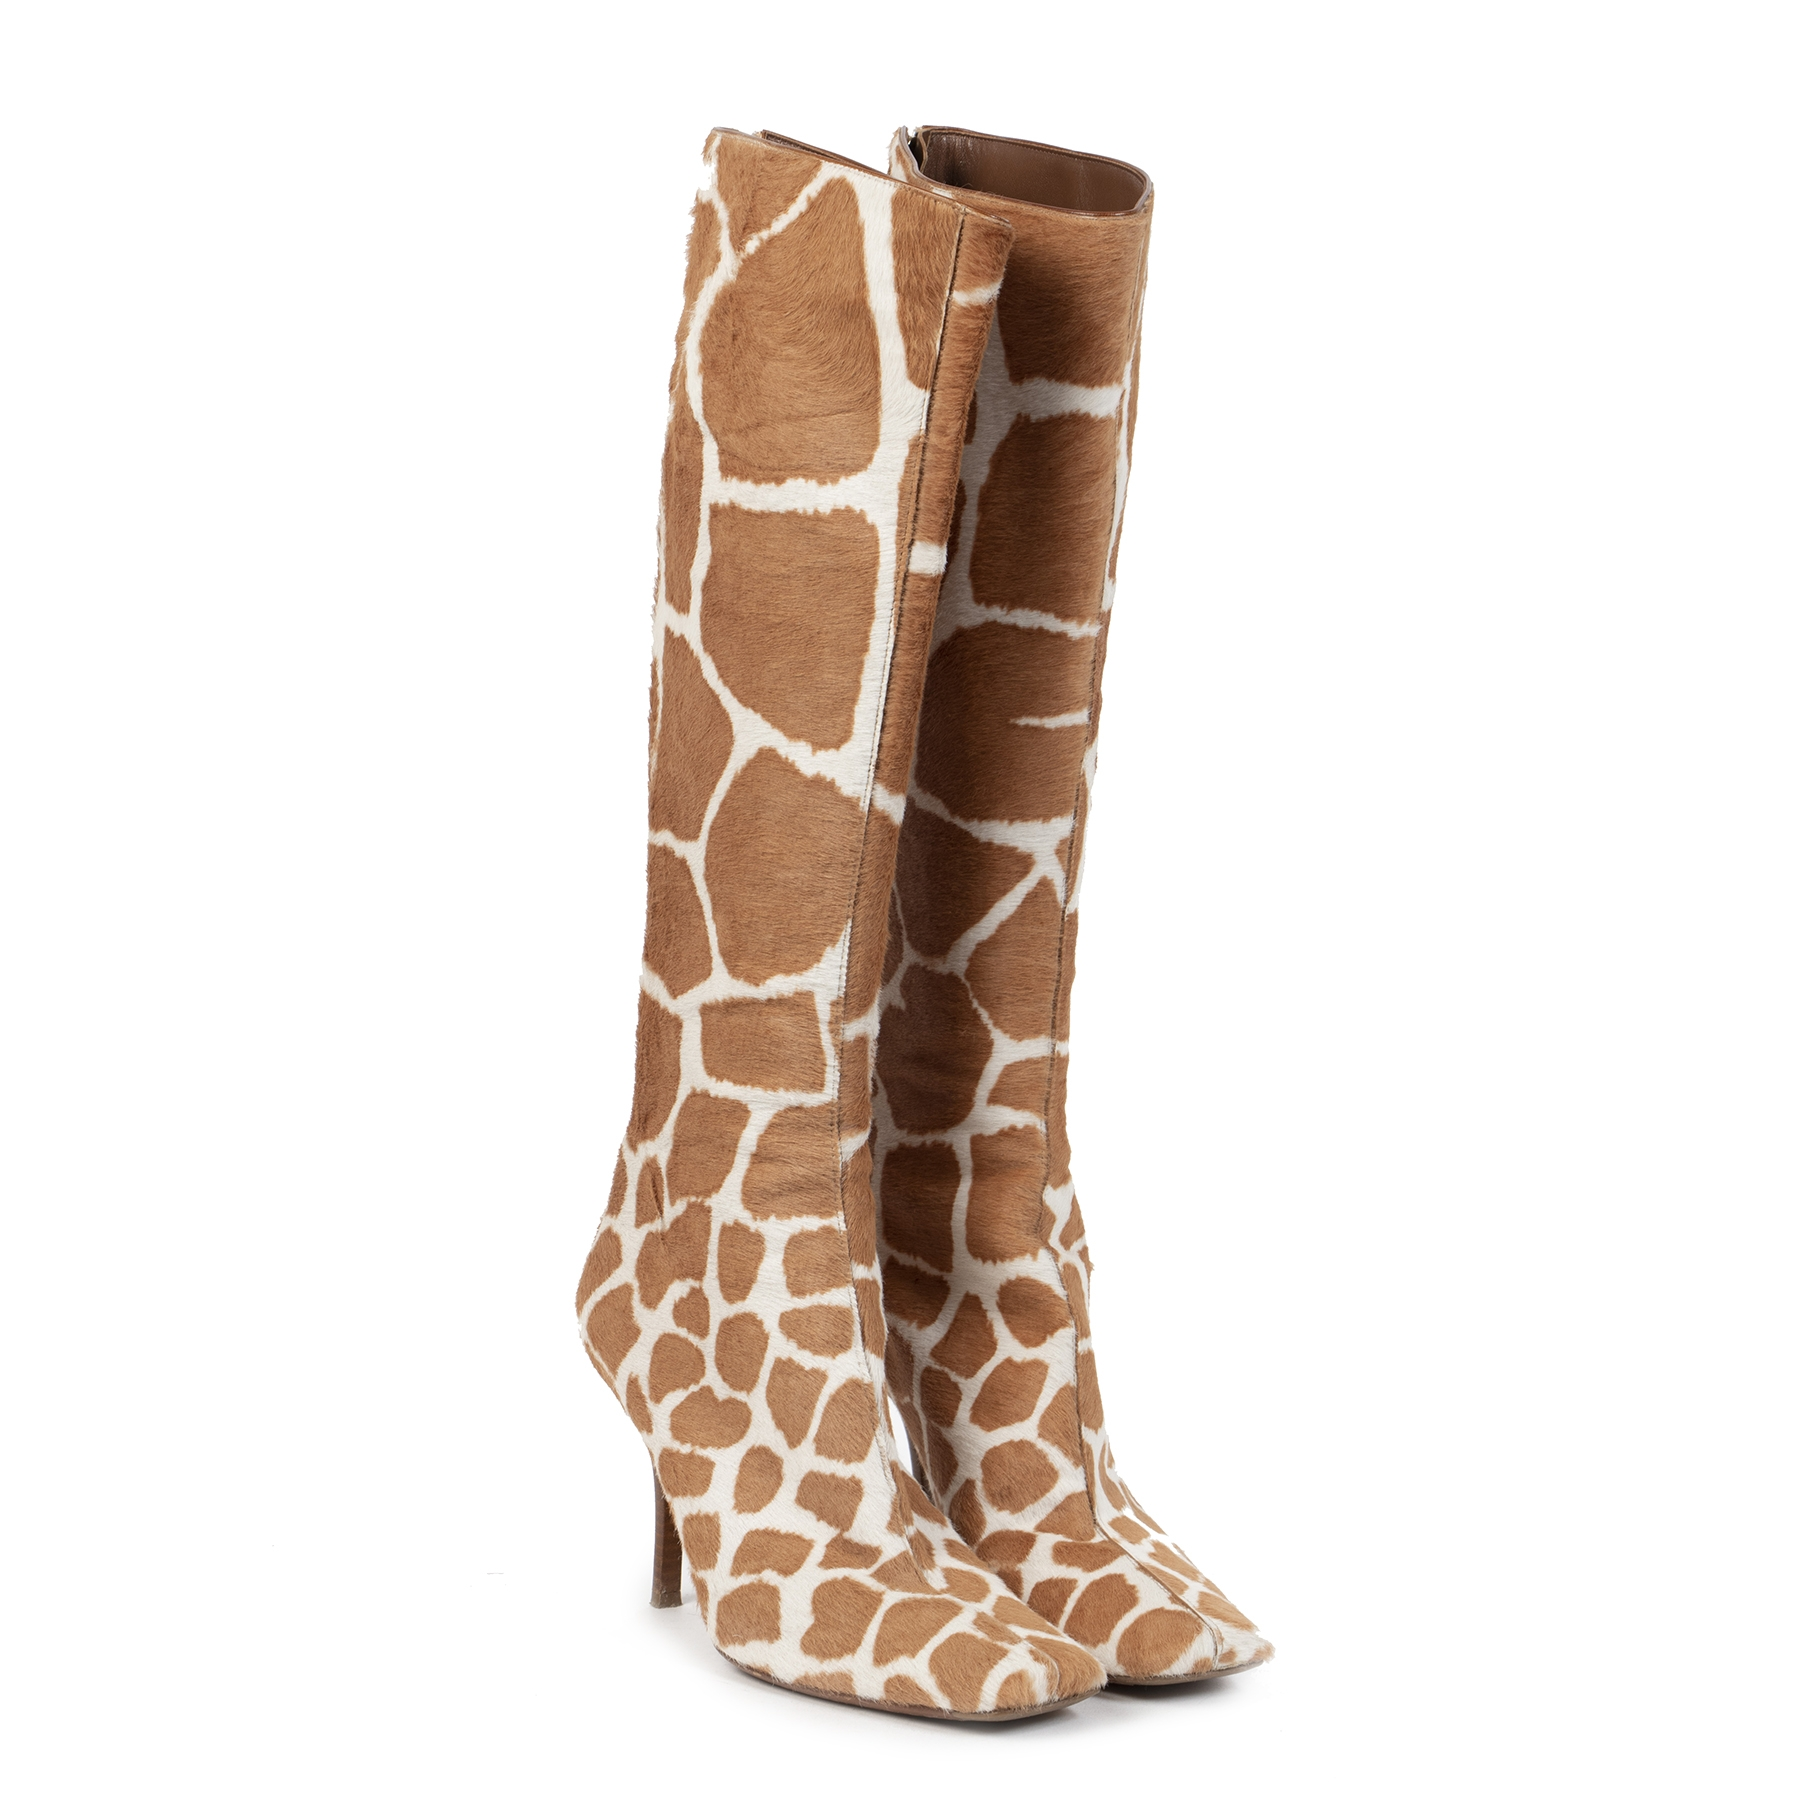 Authentic secondhand Sergio Rossi Pony Hair Leather Giraffe Boots - Size 39 designer boots shoes high heels designer brands fashion luxury vintage webshop safe secure online shopping worldwide shipping delivery